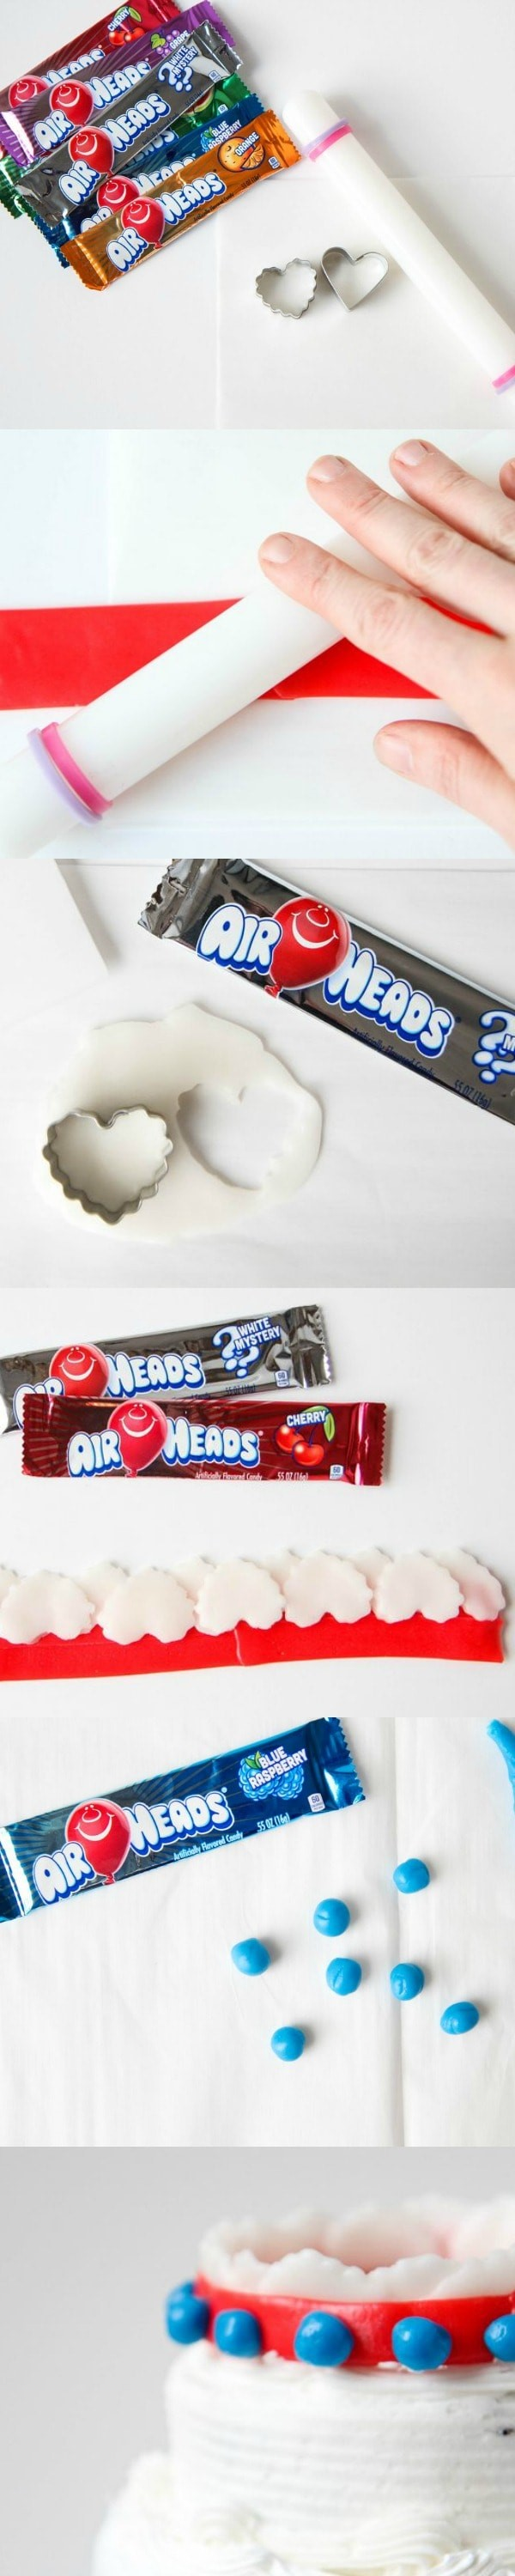 DIY Airheads Crown Cake Topper from MomAdvice.com